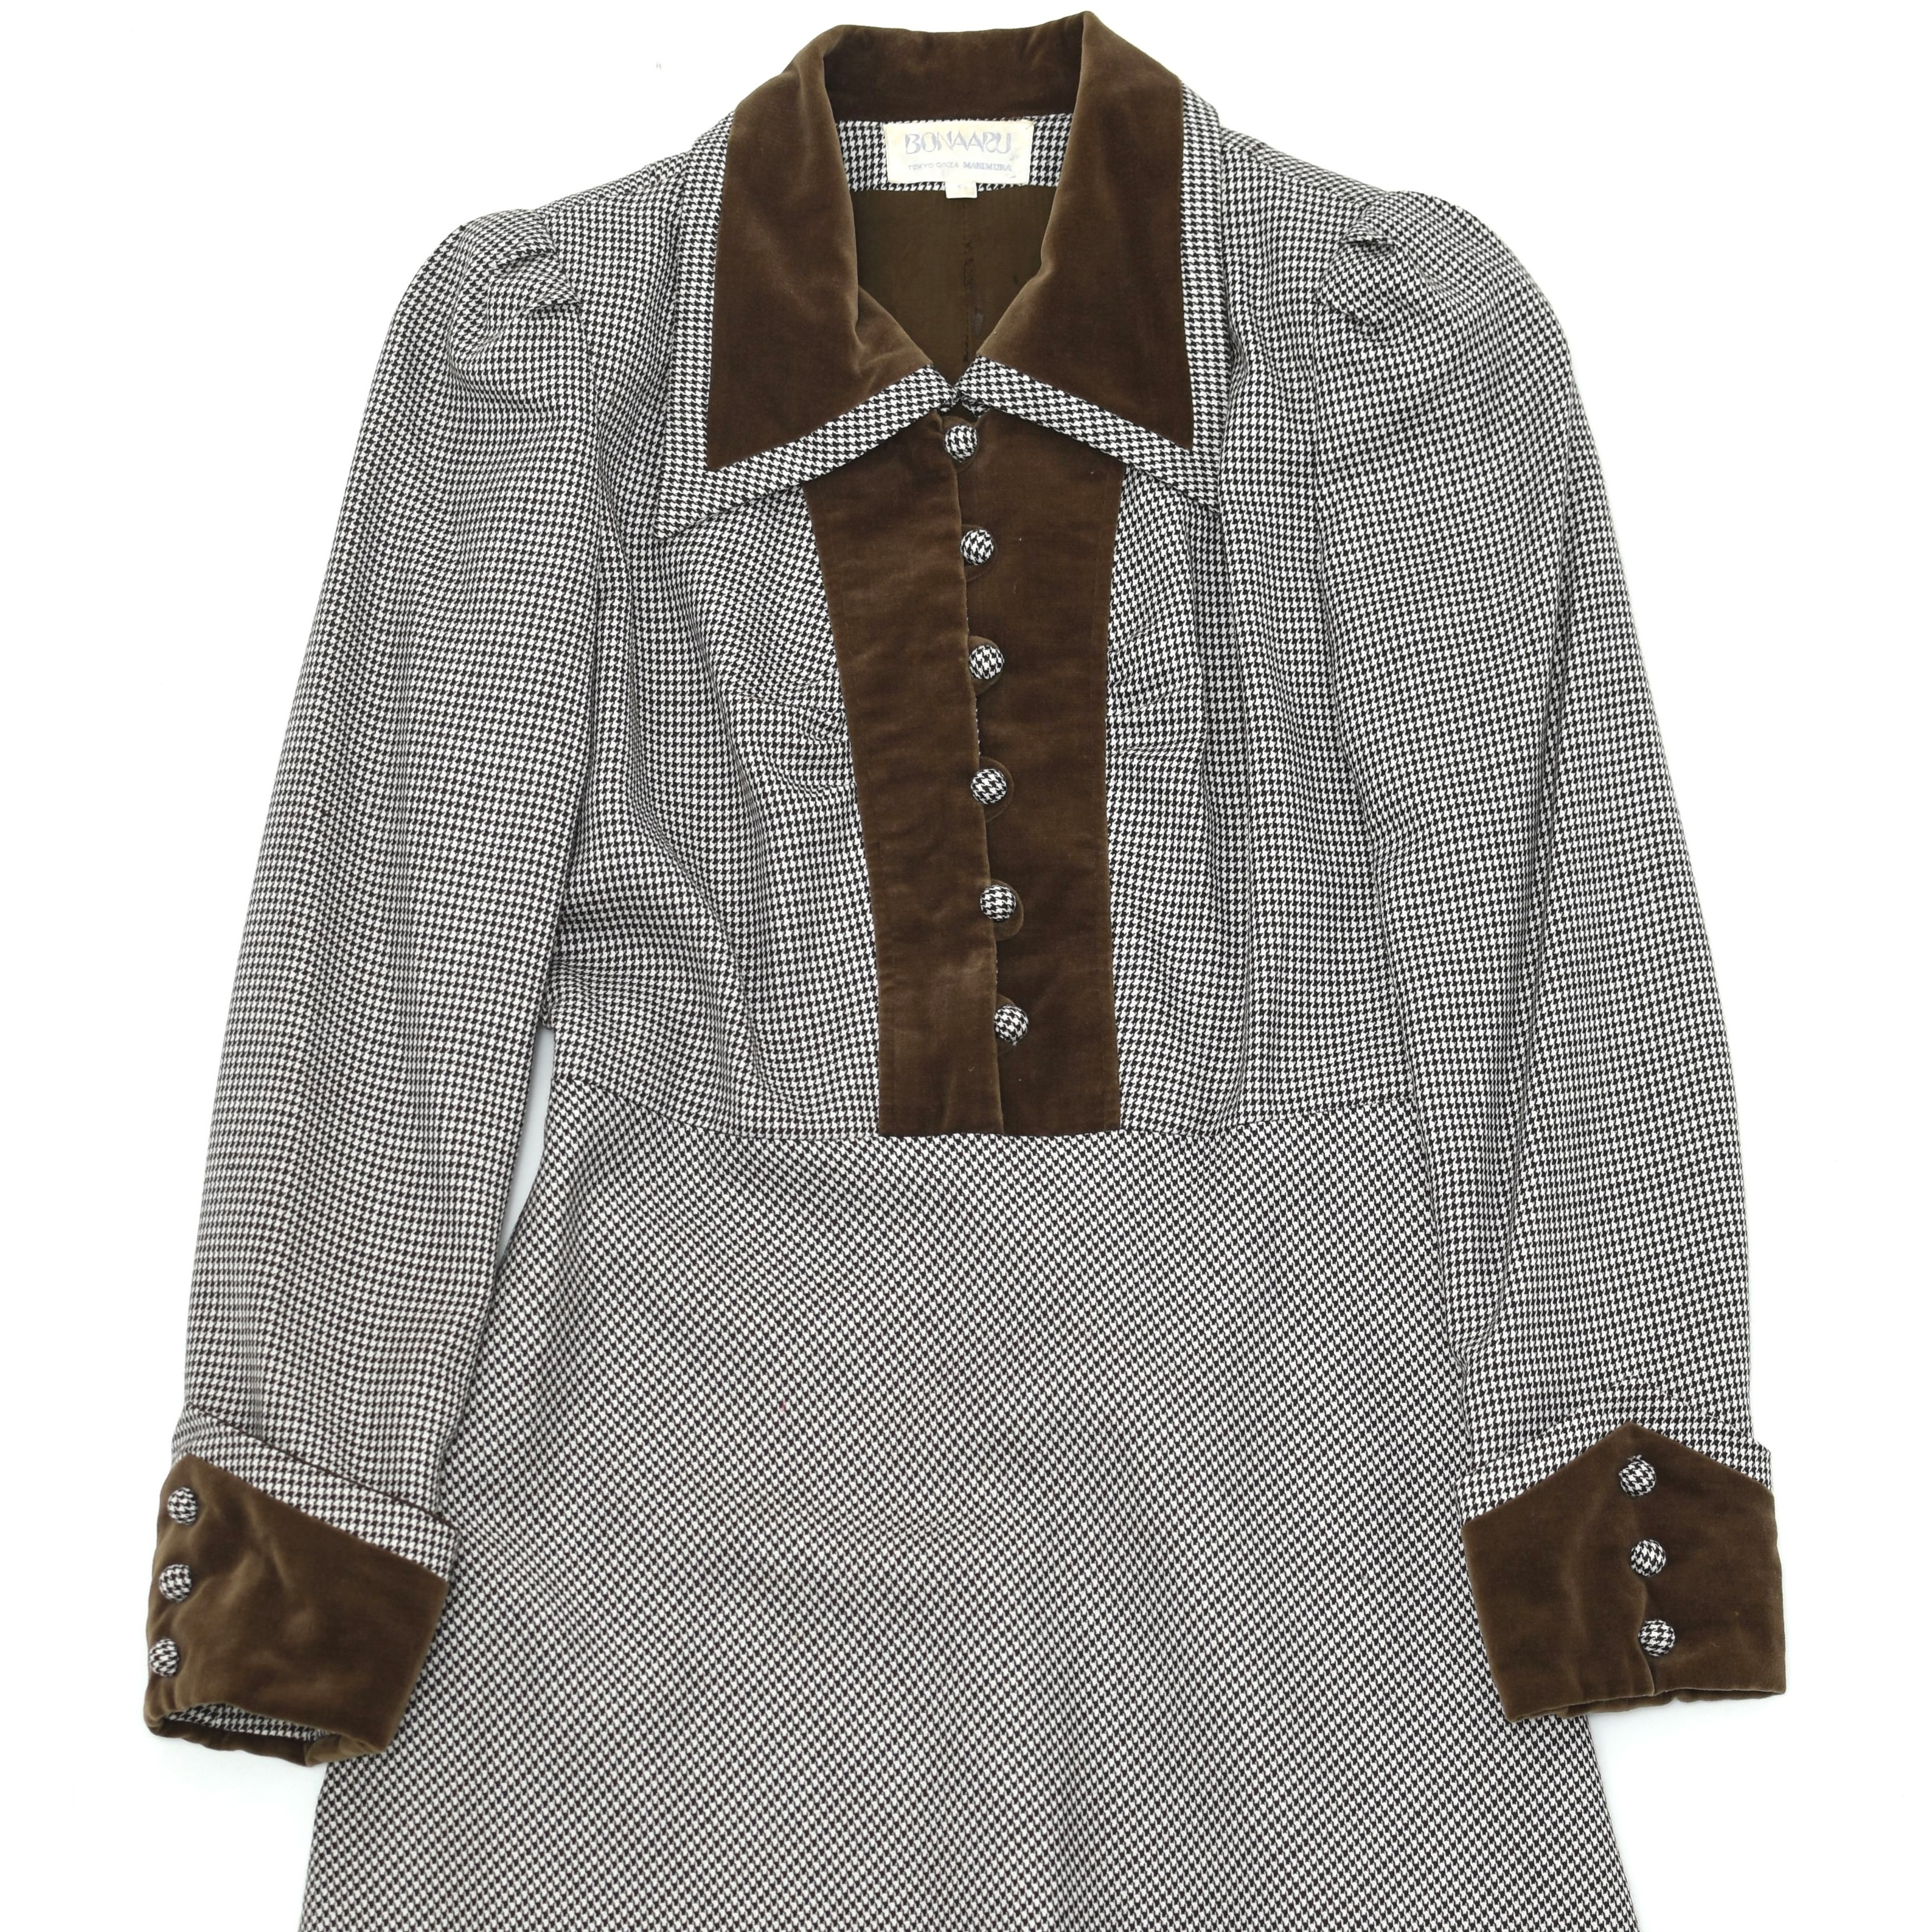 Vintage Houndstooth check onepiece